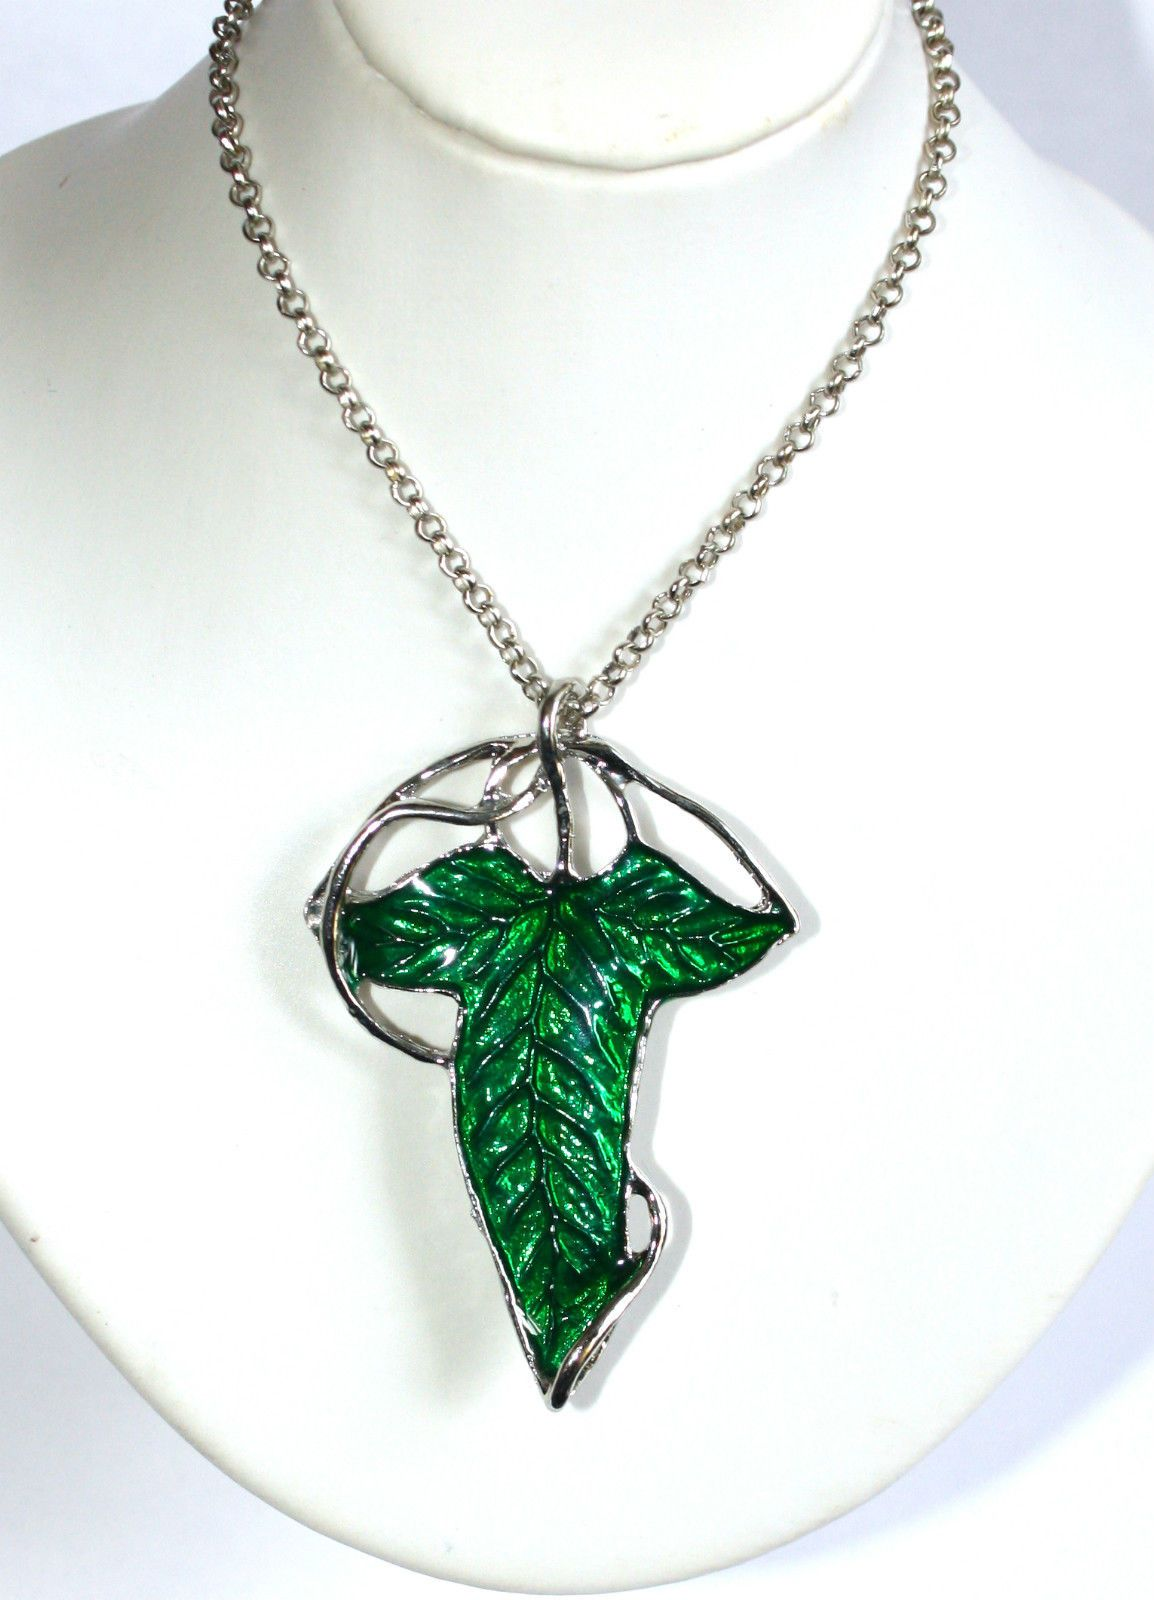 Elven leaf brooch pin necklace pendant lotr hobbit legolas aragon elven leaf brooch pin necklace pendant lotr hobbit legolas aragon lord ring aloadofball Choice Image